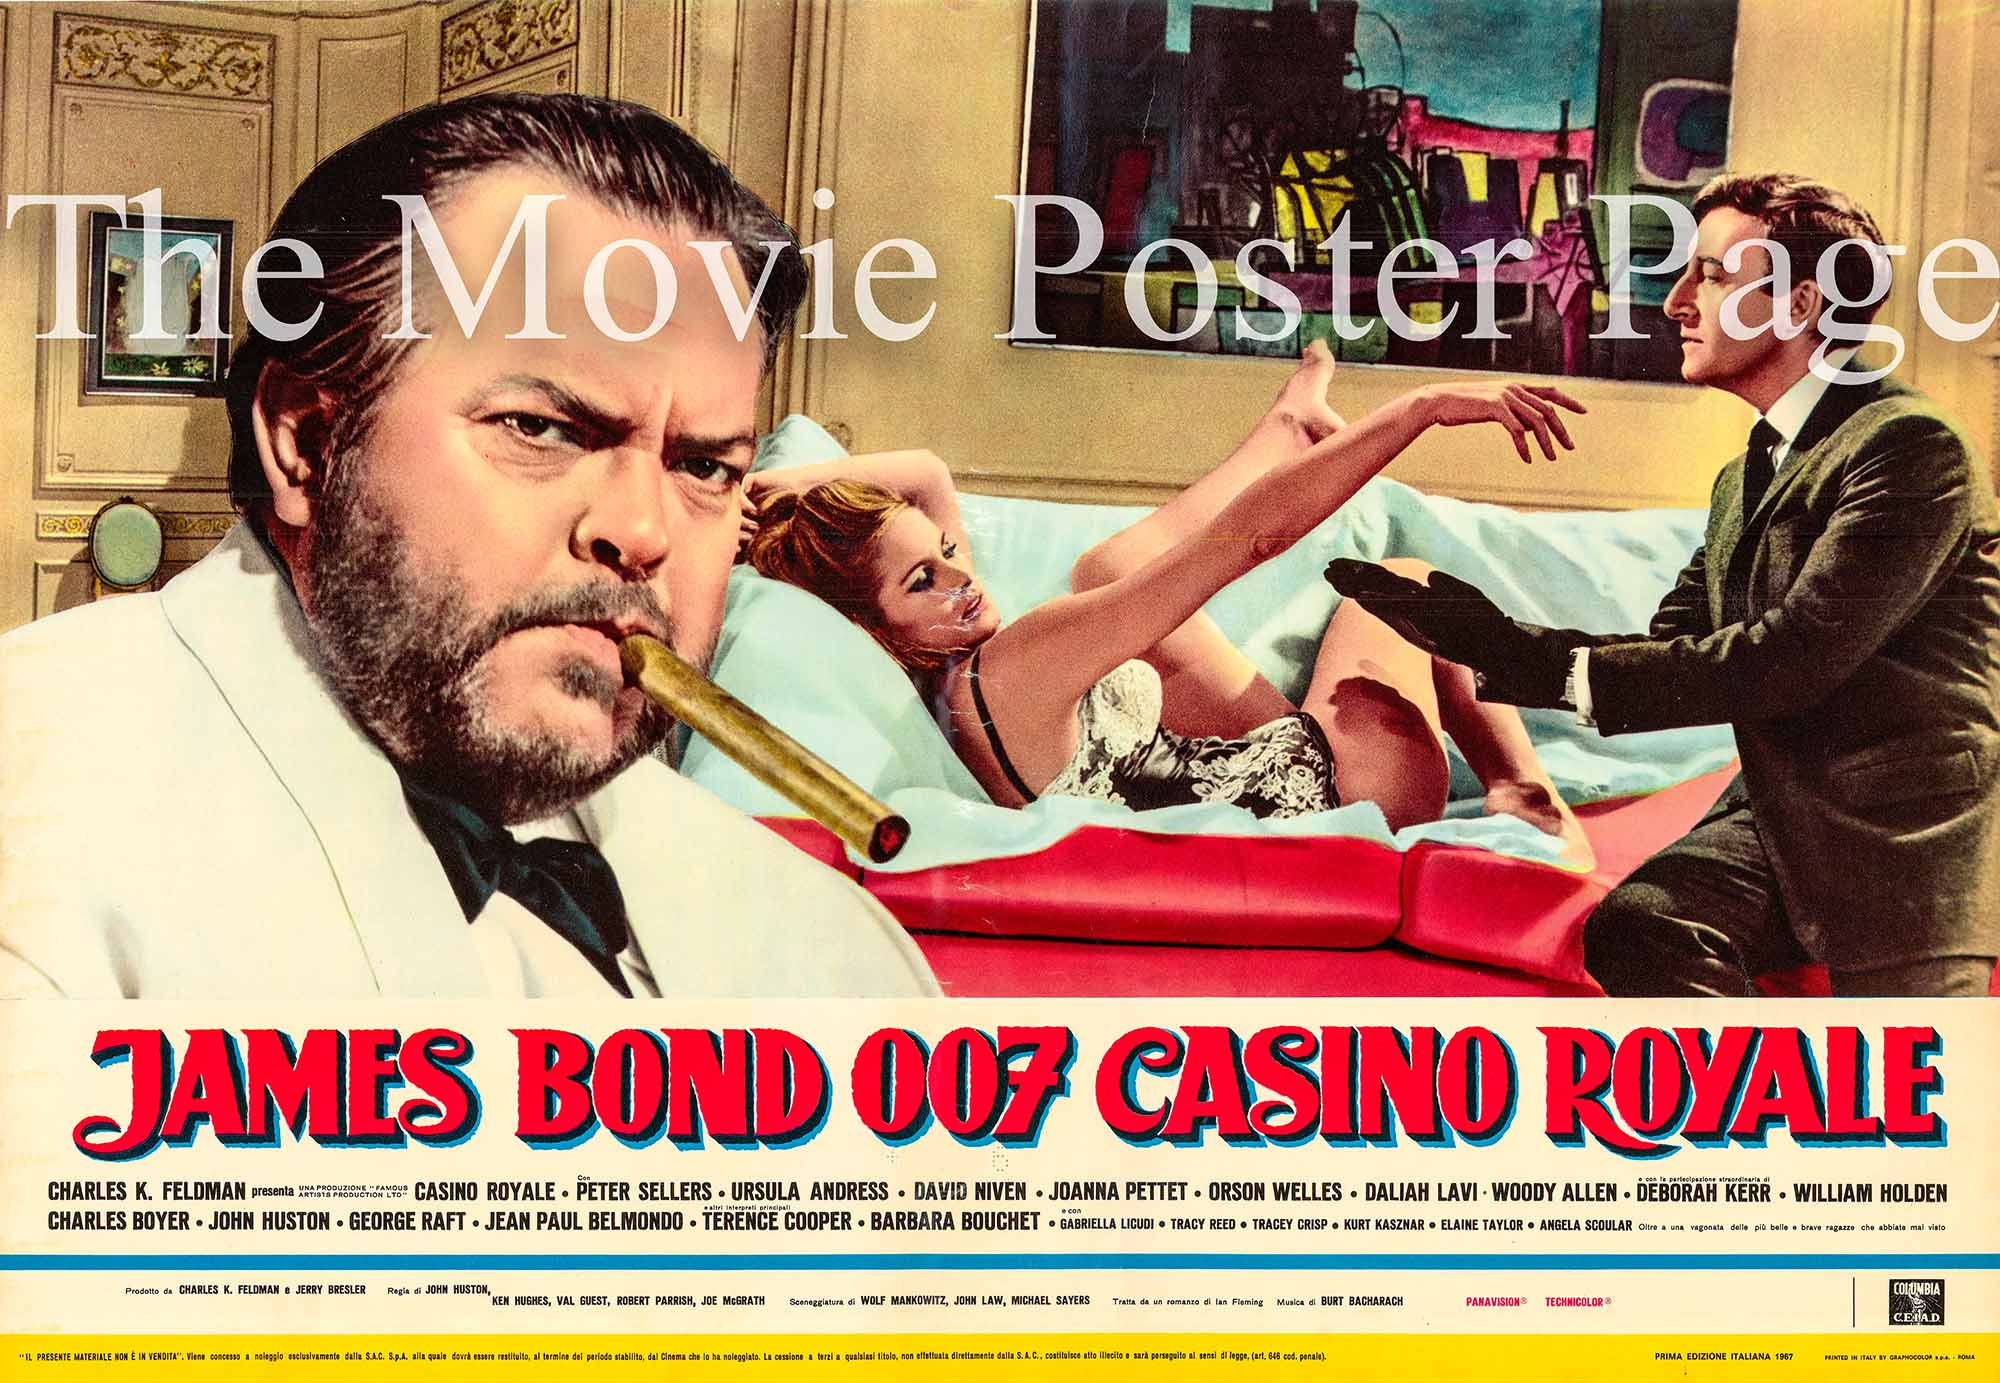 casino royale online movie free book wheel